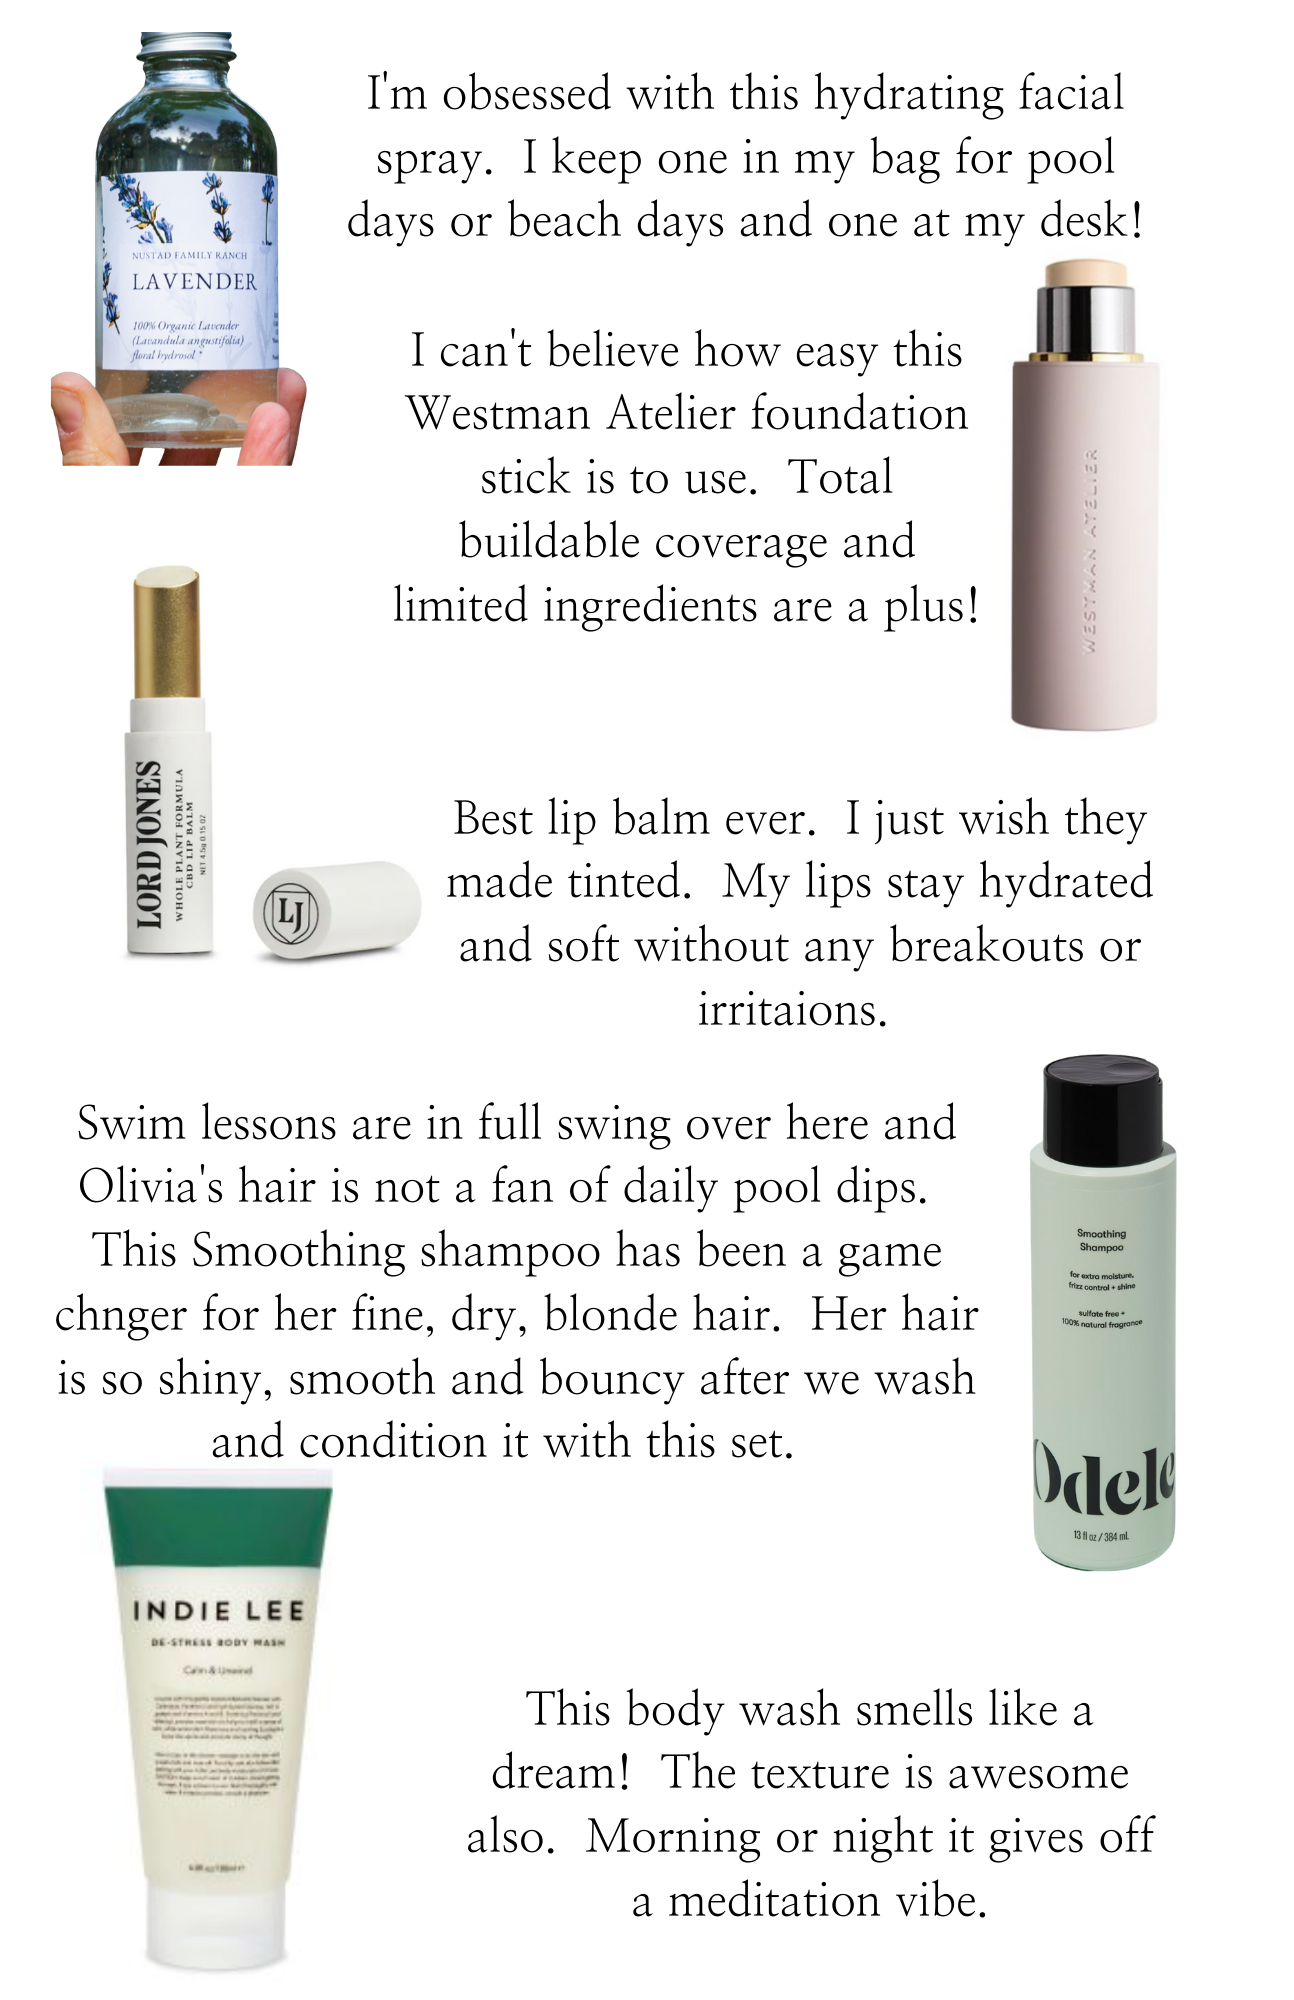 Beauty Finds by poplar Monterey beauty blog, Haute Beauty Guide: collage image of Nustad Family Ranch lavender, Westman Atelier foundation stick, Lord Jones lip balm, Odele shampoo and conditioner, and Indie Lee body wash.